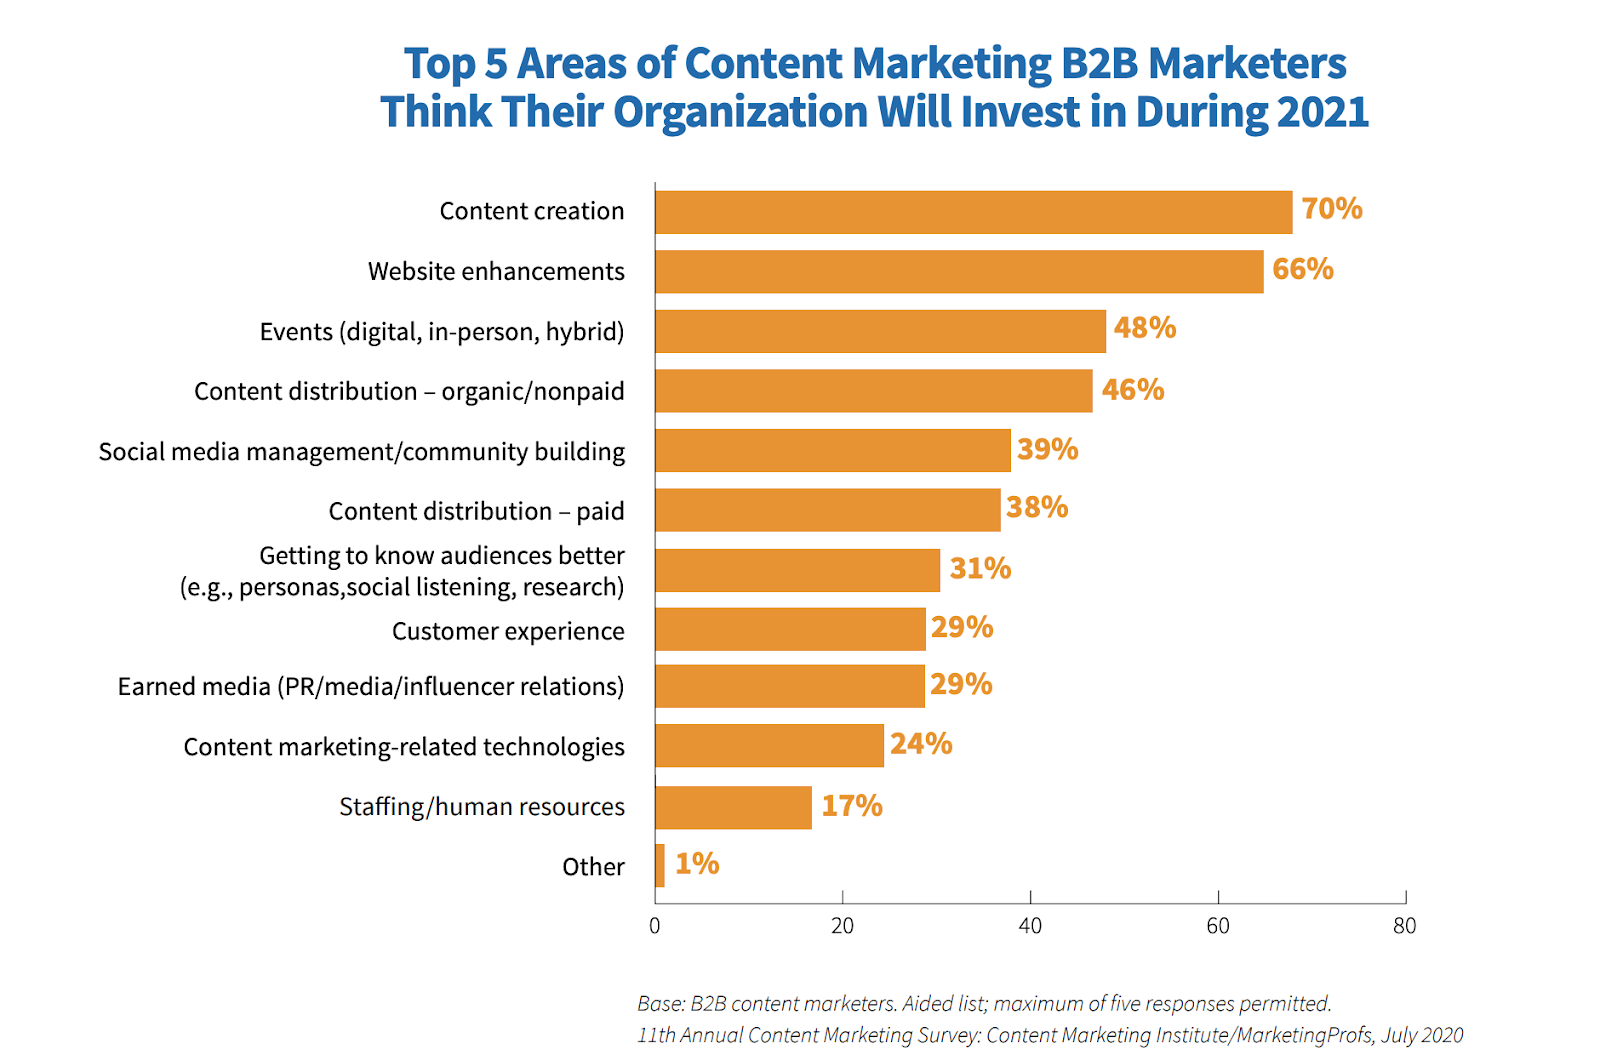 Top 5 areas of content marketing B2B marketers think their organization will invest in during 2021